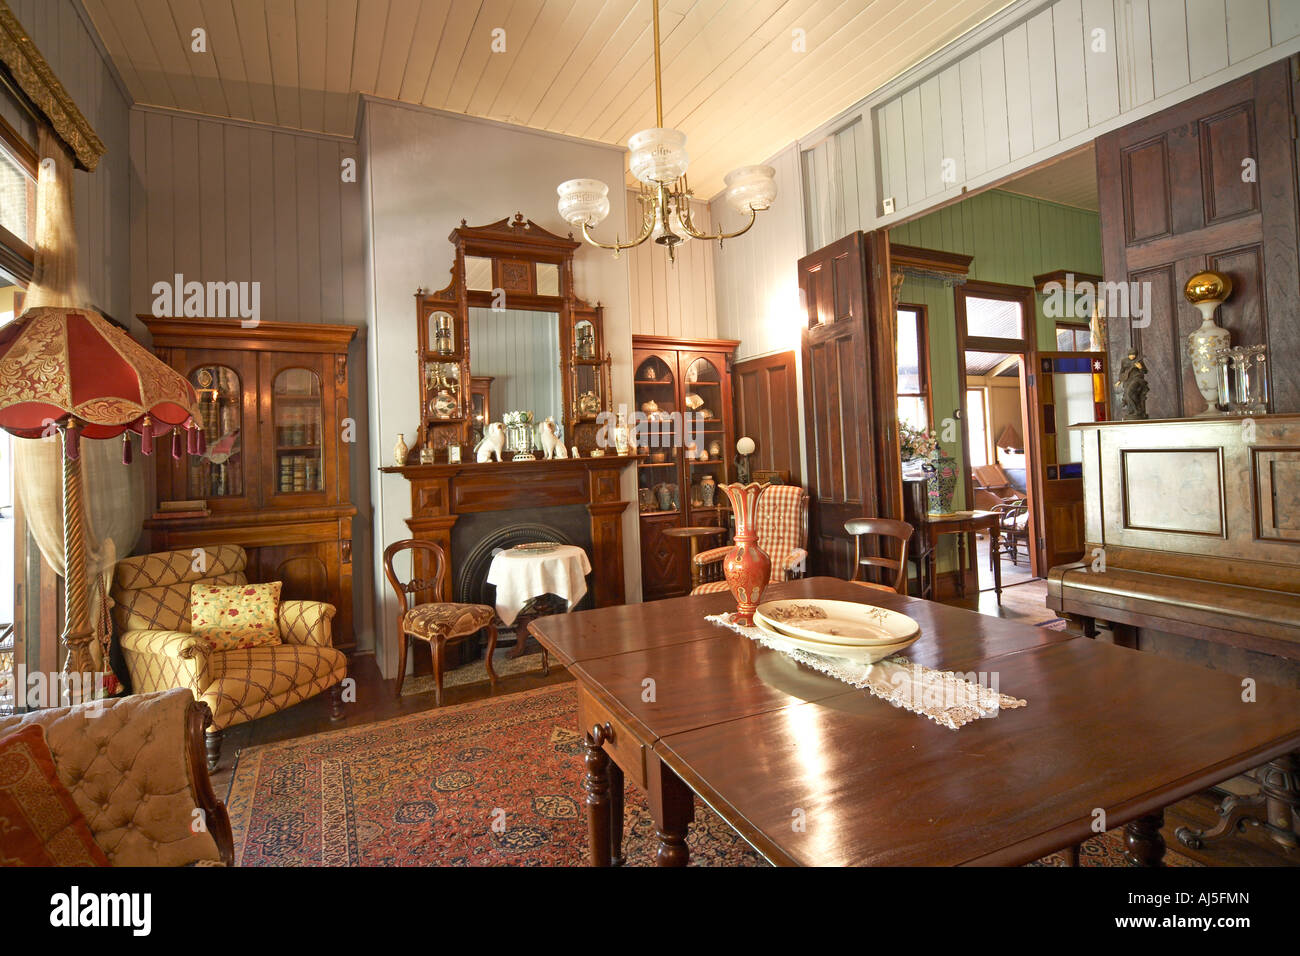 Dining Room Interior Of Old Colonial Style Queenslander Wooden House Building With Gardens In Dakabin Queensland QLD Australia